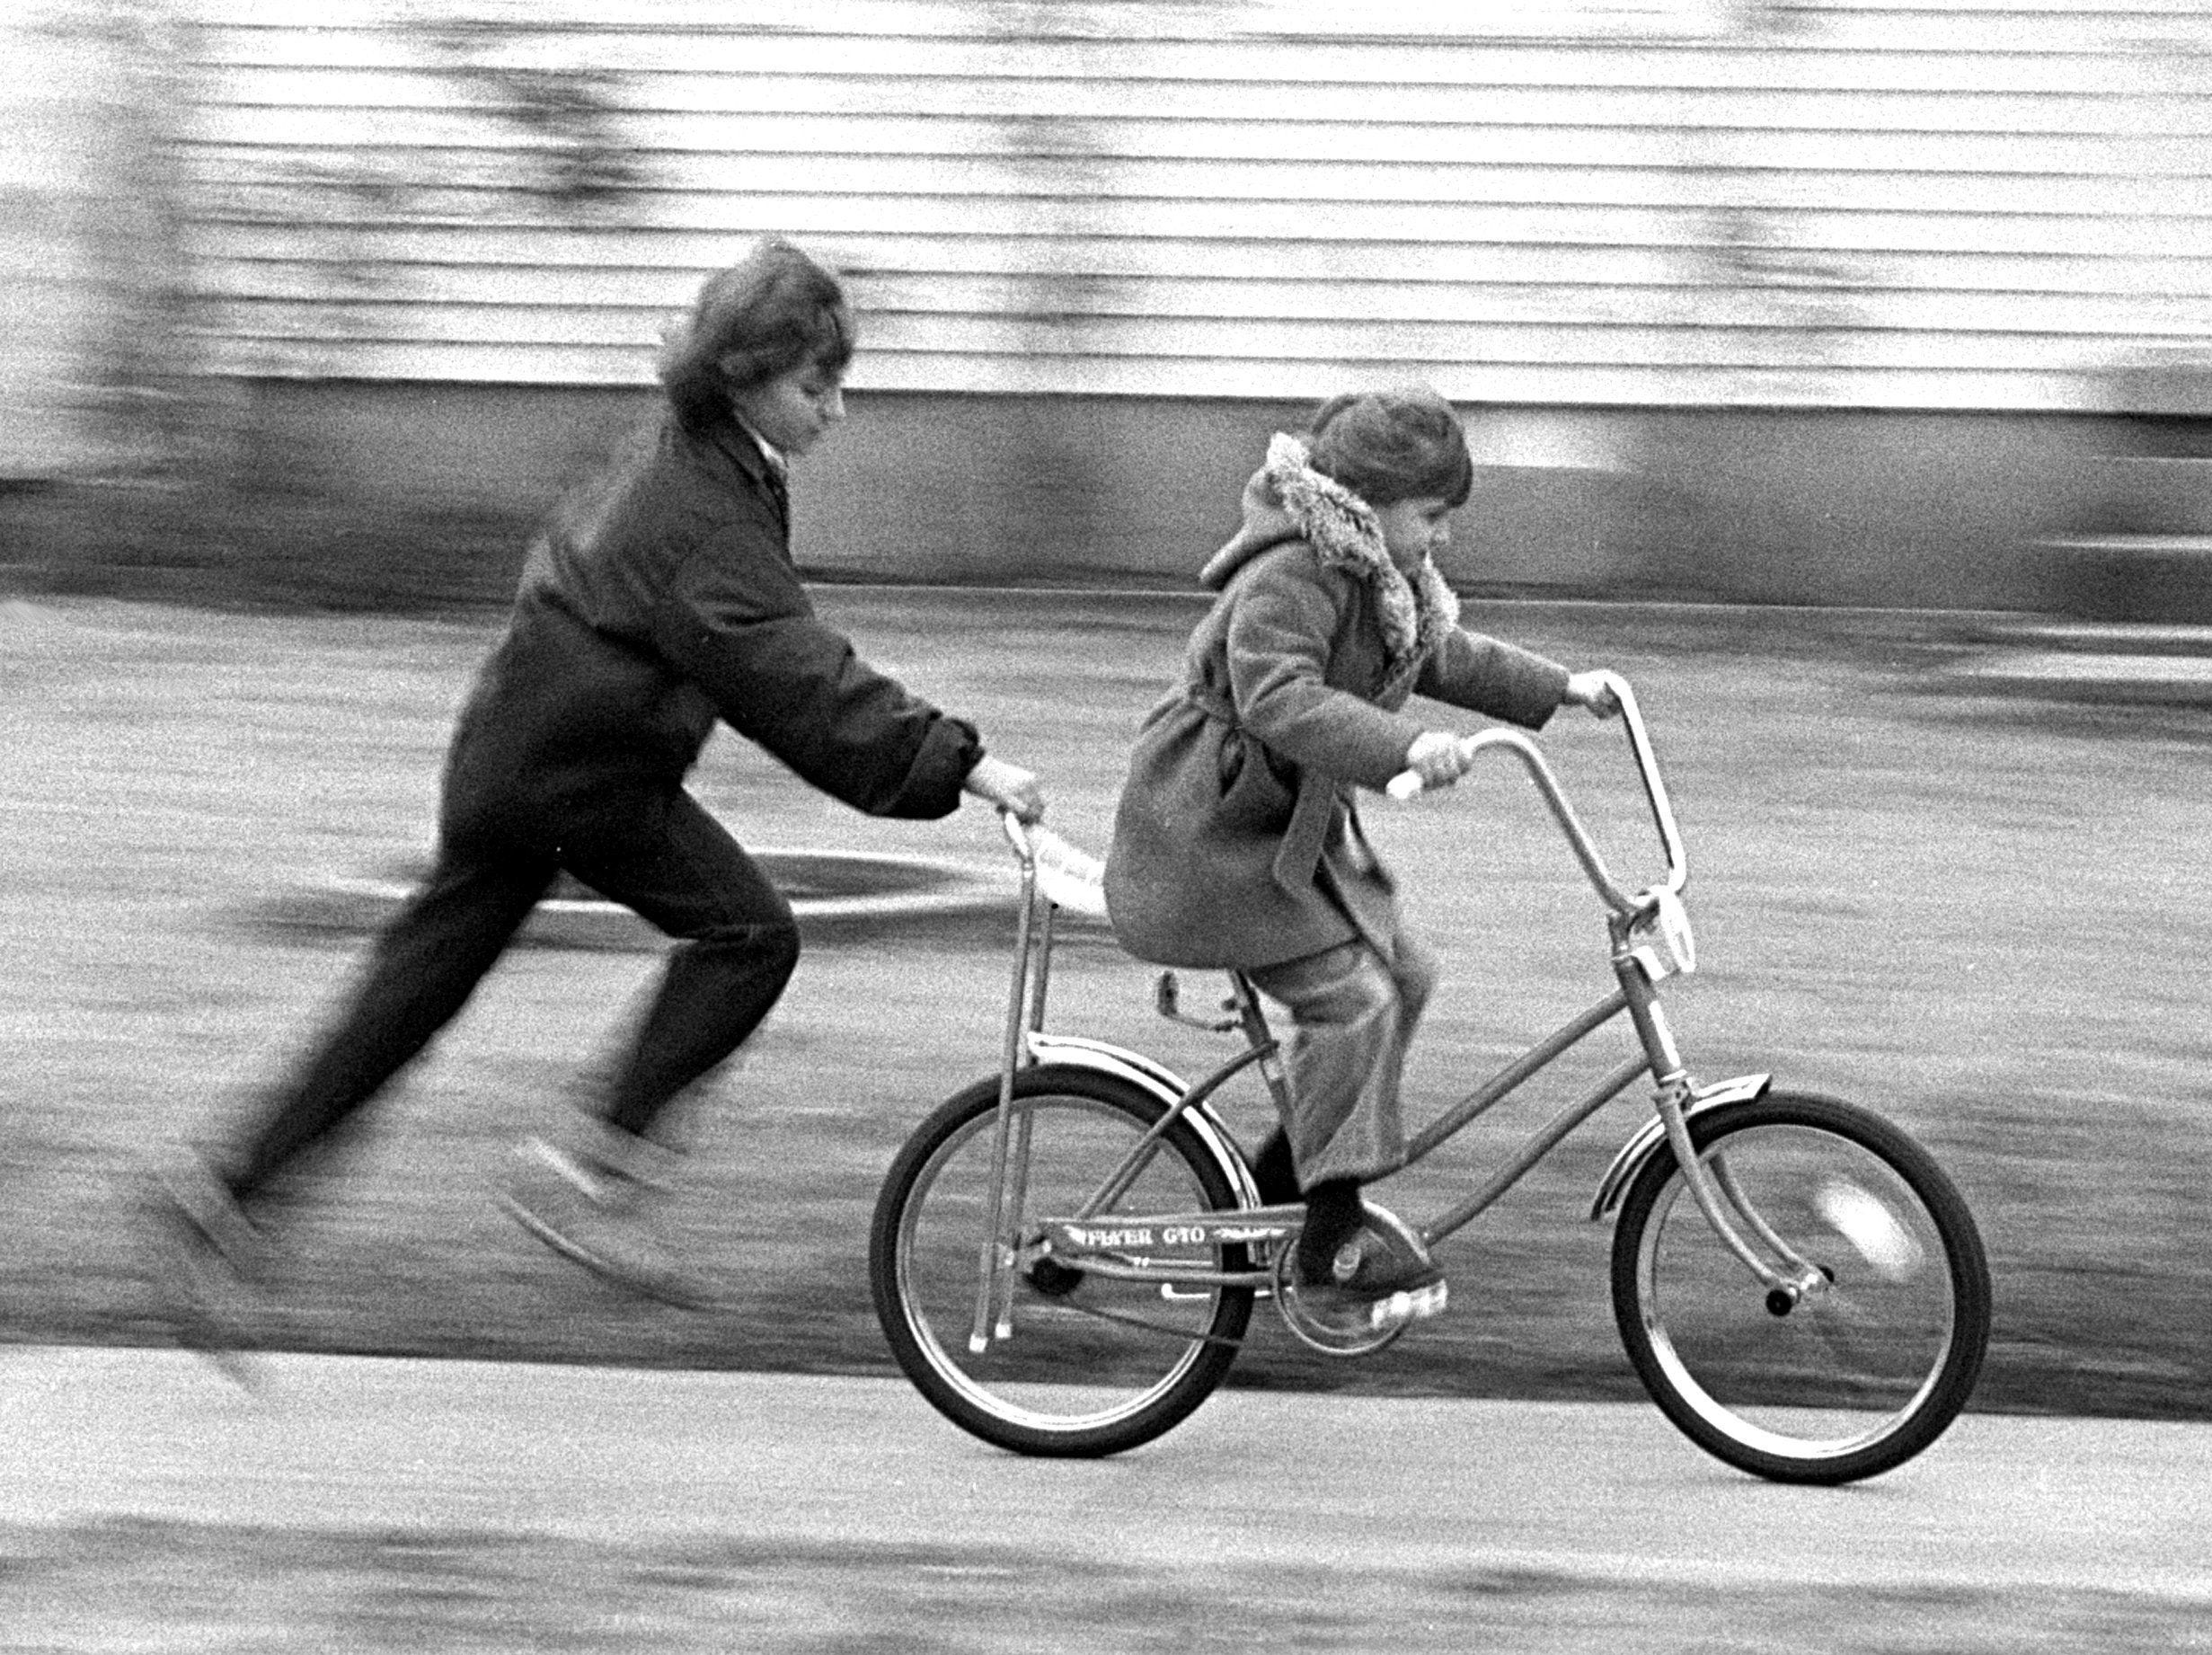 Almost as quickly as children find what Santa?s left behind, they head outside to give the new toys a try. The cool, cloudy weather doesn?t seem to matter as Vickie Turner, 11, helps her sister Rachael, 6, ride her new bicycle on Dec. 25, 1979. Vickie and Rachael are the daughters of Mr. and Mrs. William Turner of 991 Maria. Robb Mitchell / The Commercial Appeal Almost as quickly as children find what Santa's left behind, they head outside to give the new toys a try. The cool, cloudy weather doesn't seem to matter as Vickie Turner, 11, helps her sister Rachael, 6, ride her new bicycle on 25 Dec 1979. Vickie and Rachael are the daughters of Mr. and Mrs. William Turner of 991 Maria.